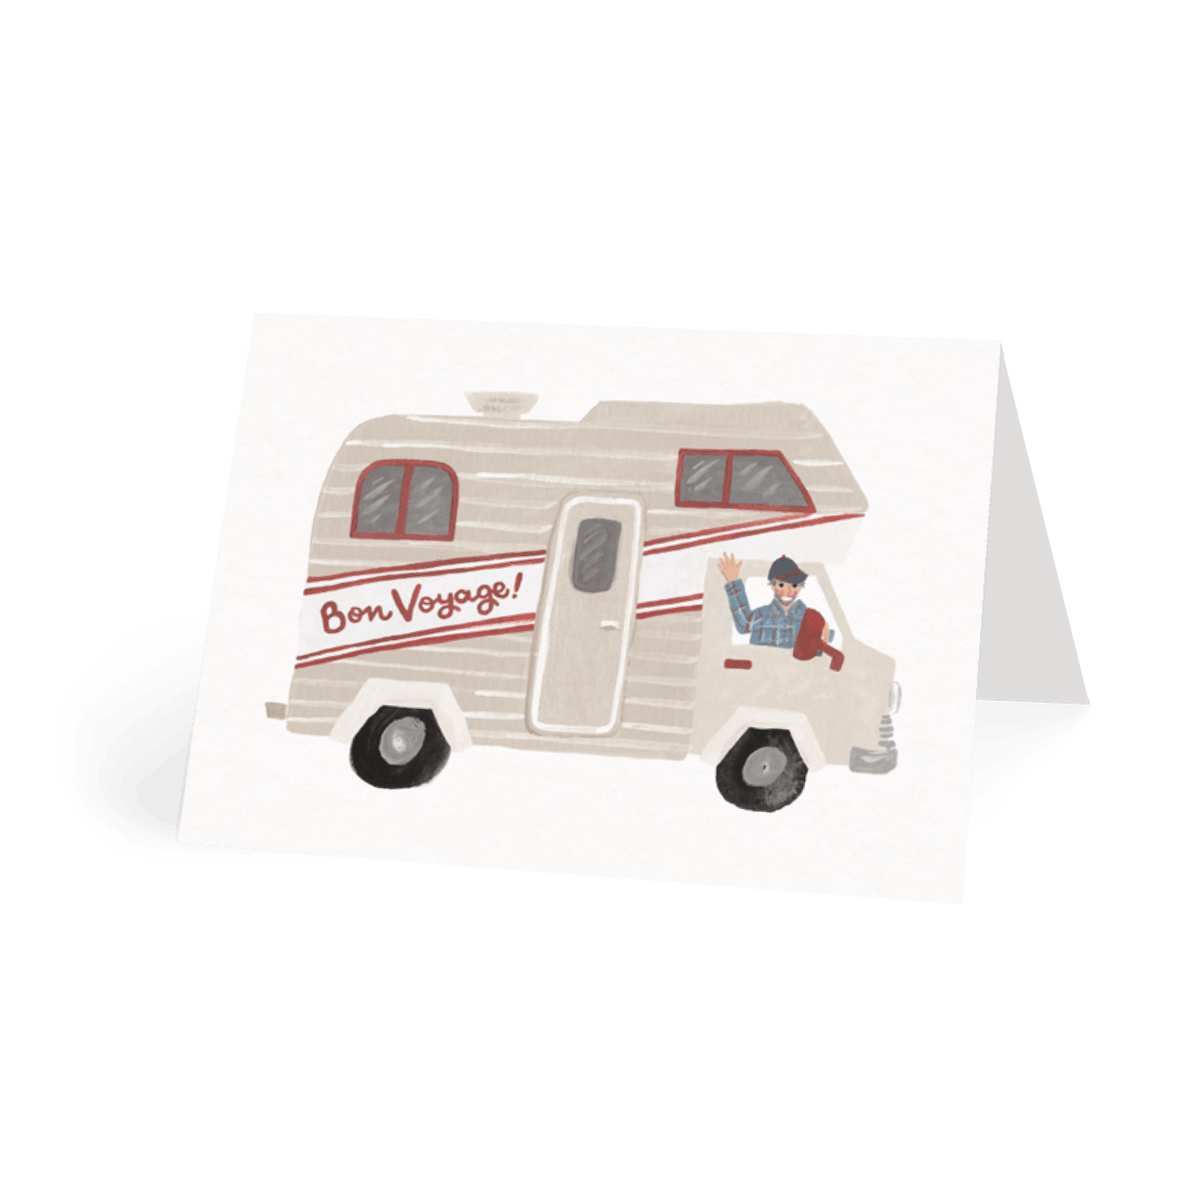 Https%3a%2f%2fwww.papier.com%2fproduct image%2f30572%2f14%2fbon voyage campervan 7701 front 1509380261.png?ixlib=rb 1.1